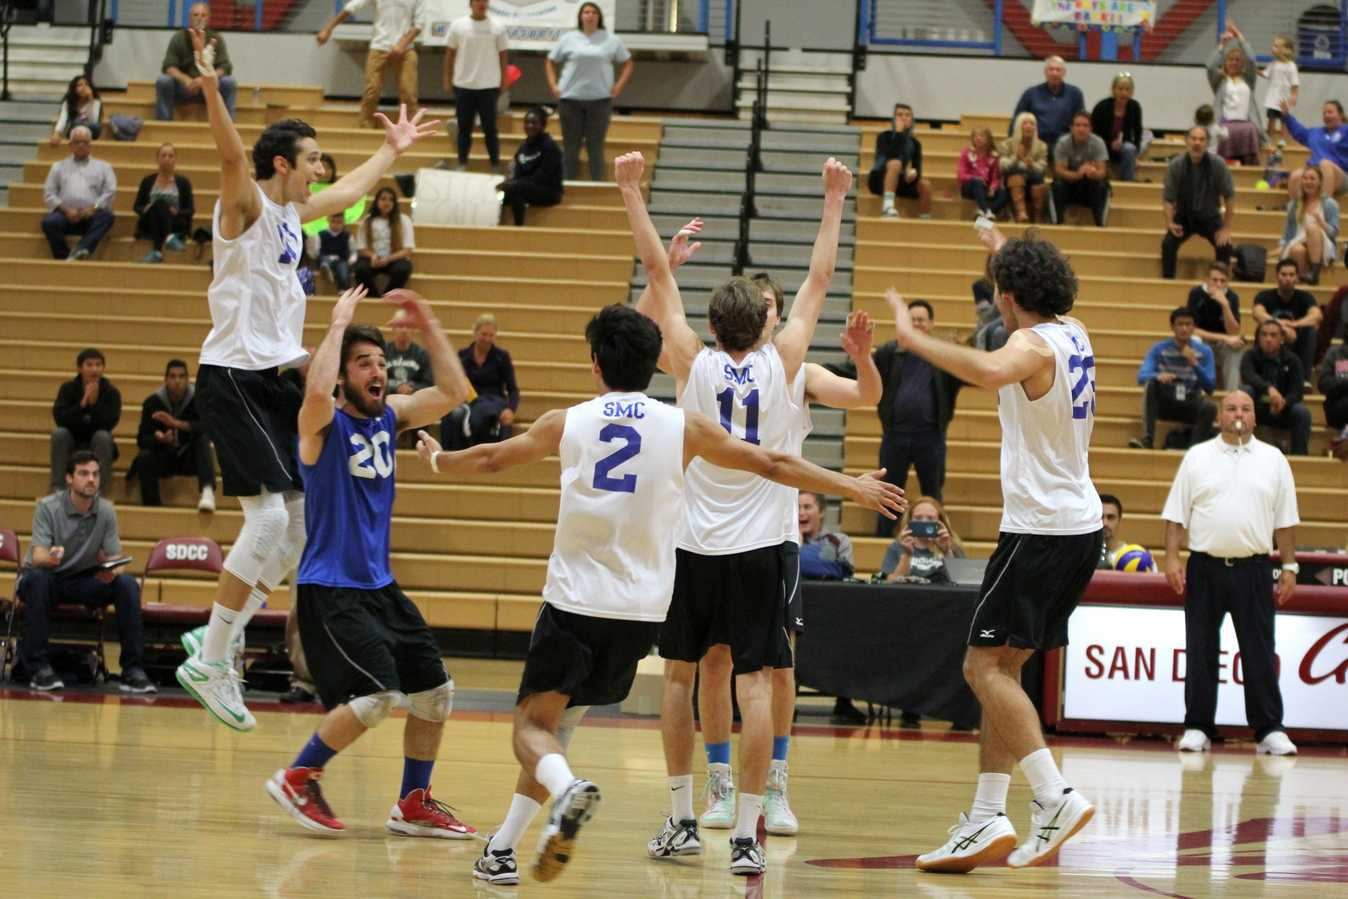 The Santa Monica men's volleyball team celebrating their championship victory as the final whistle blew at the Harry West Gym on April 25. Photo Credit: David Pradel